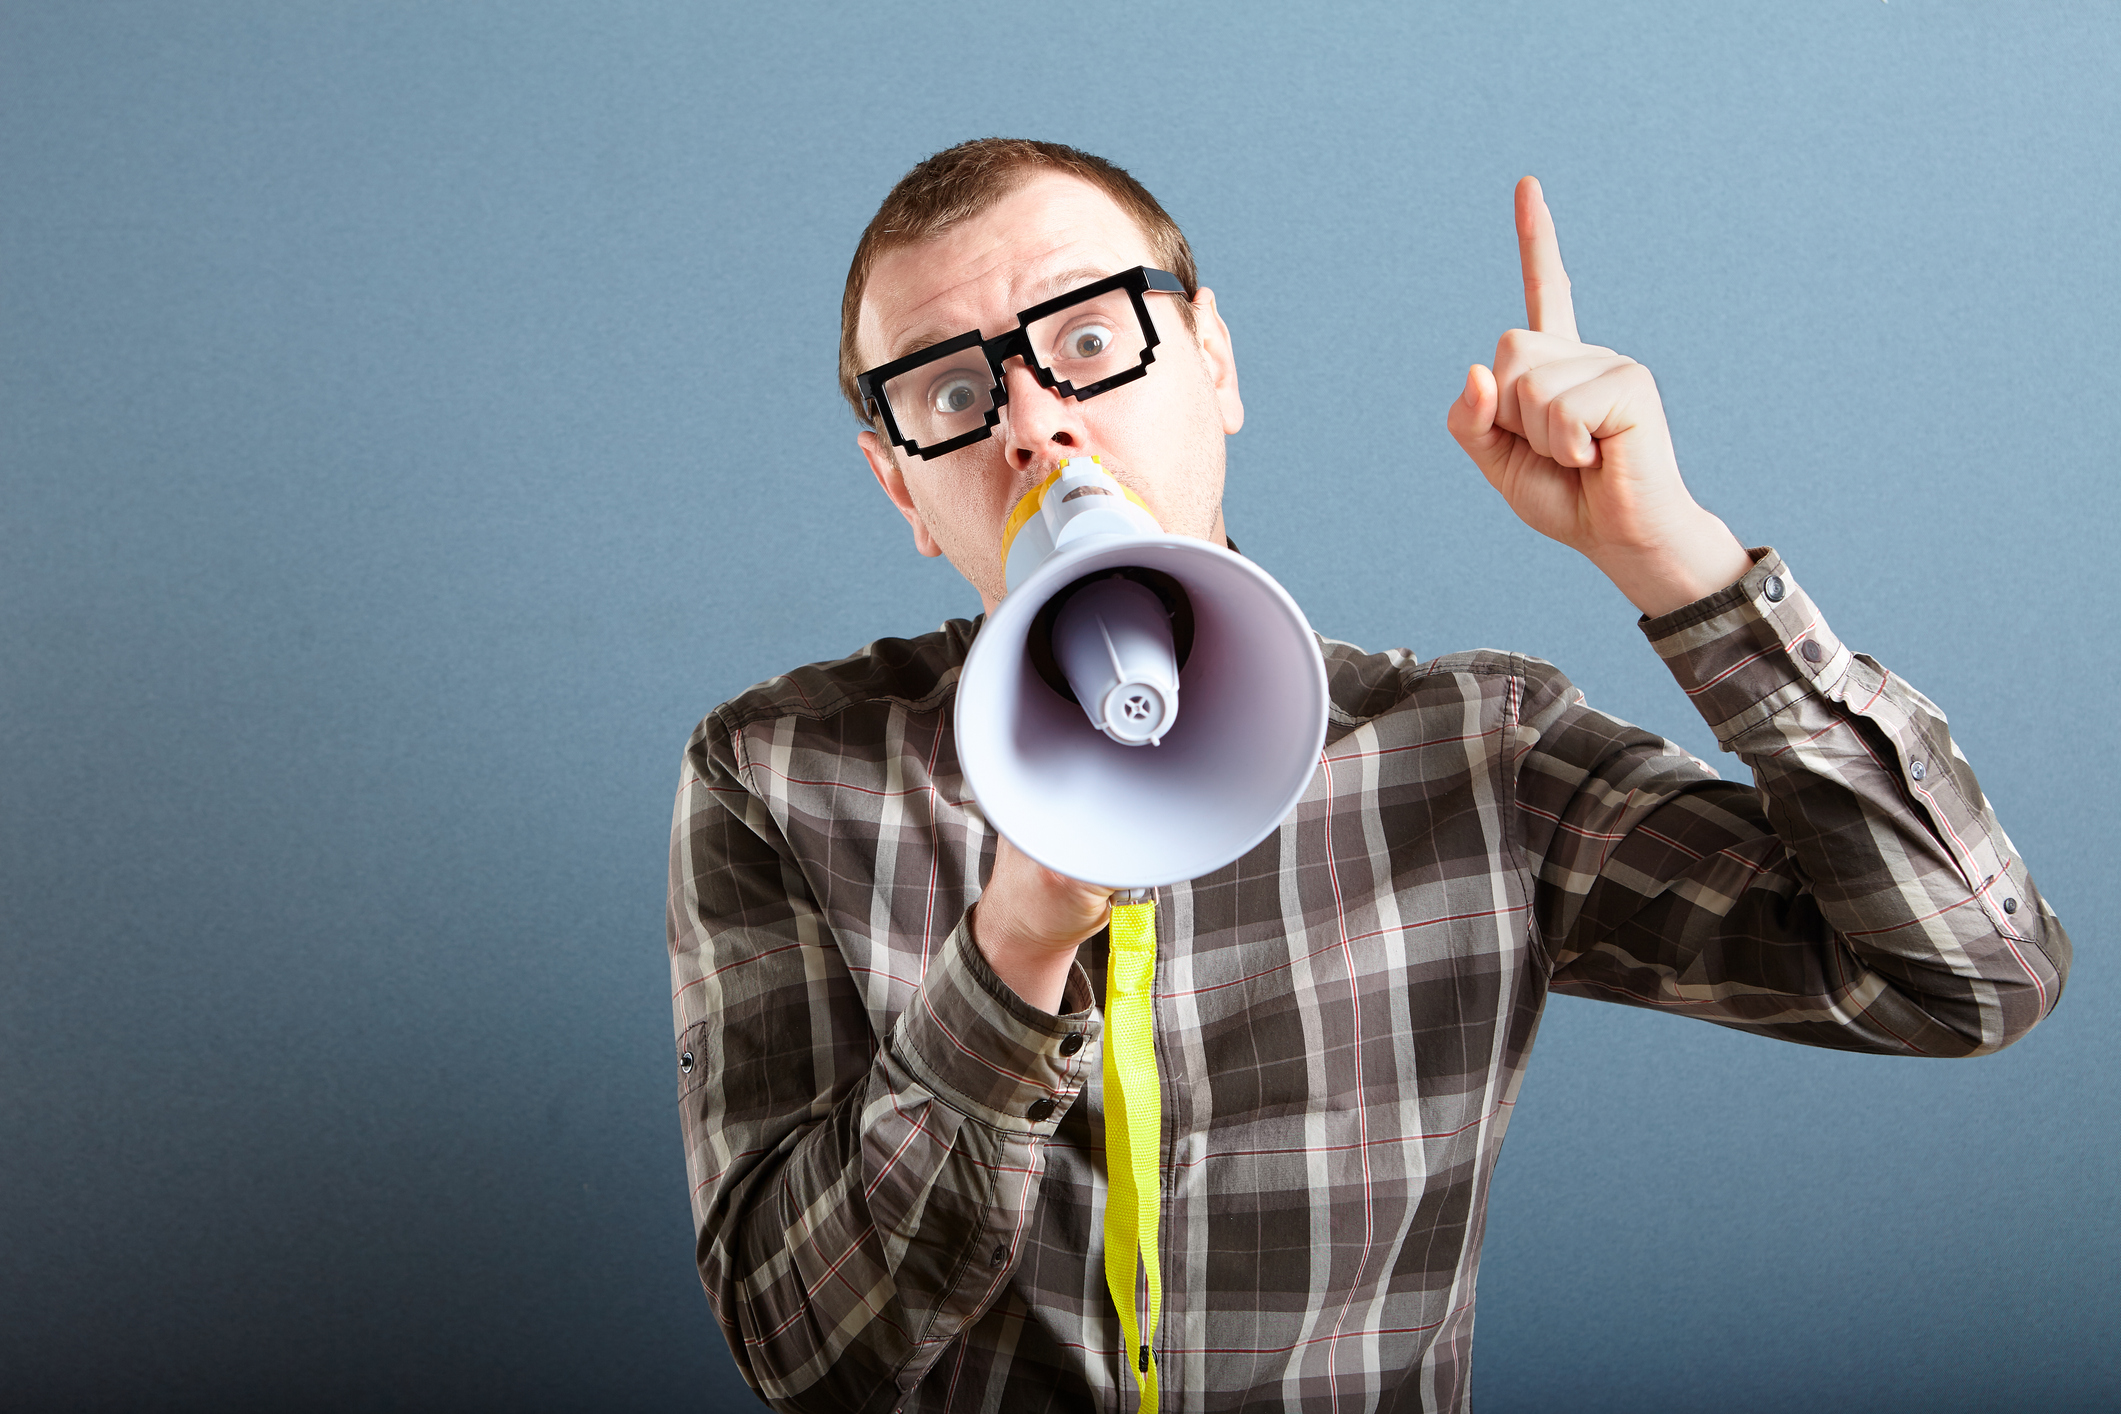 Nerdy guy with glasses holding megaphone and screaming loud, and gesturing with index finger raised